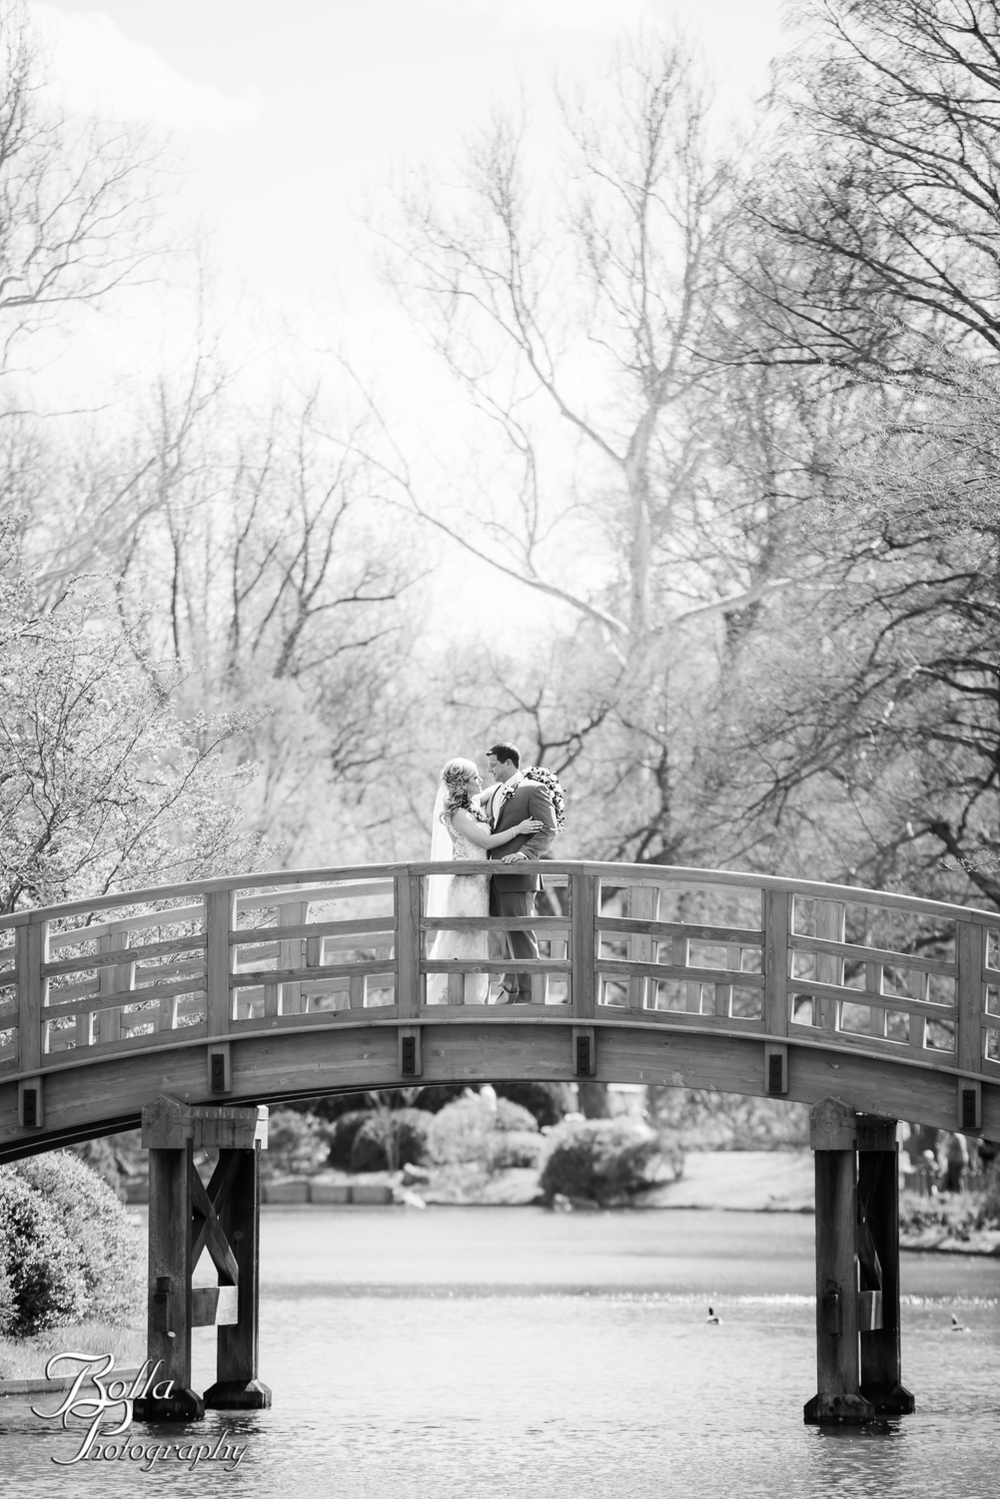 Bolla_Photography_St_Louis_wedding_photographer_Morgando_Blues_hockey_Botanical_Gardens_spring-0002-2.jpg